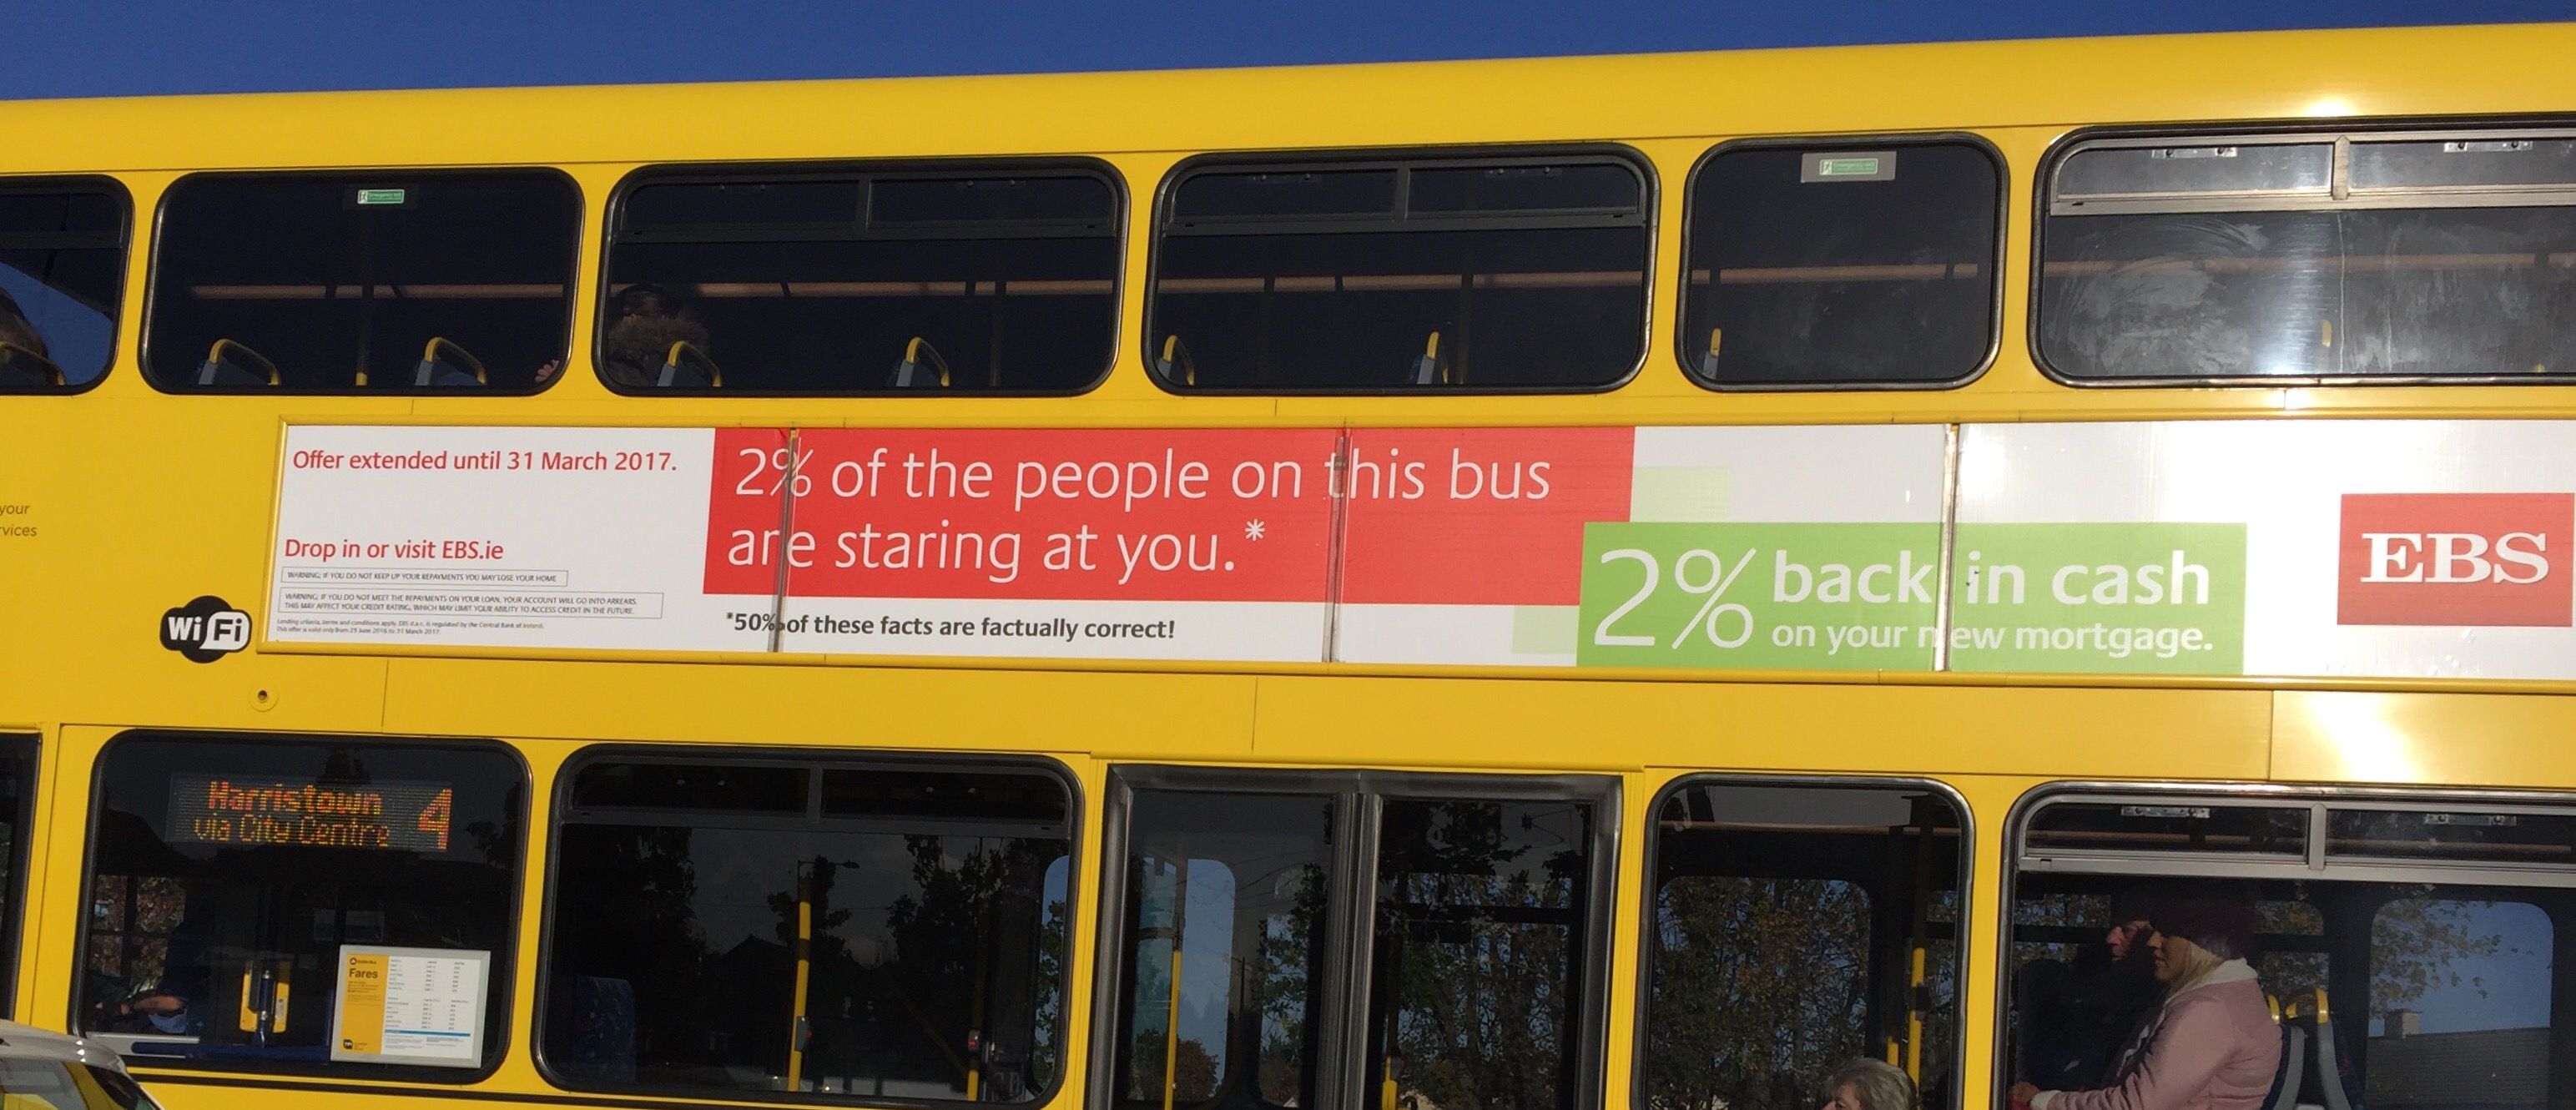 EBS – 2% of the people on this bus are staring at you